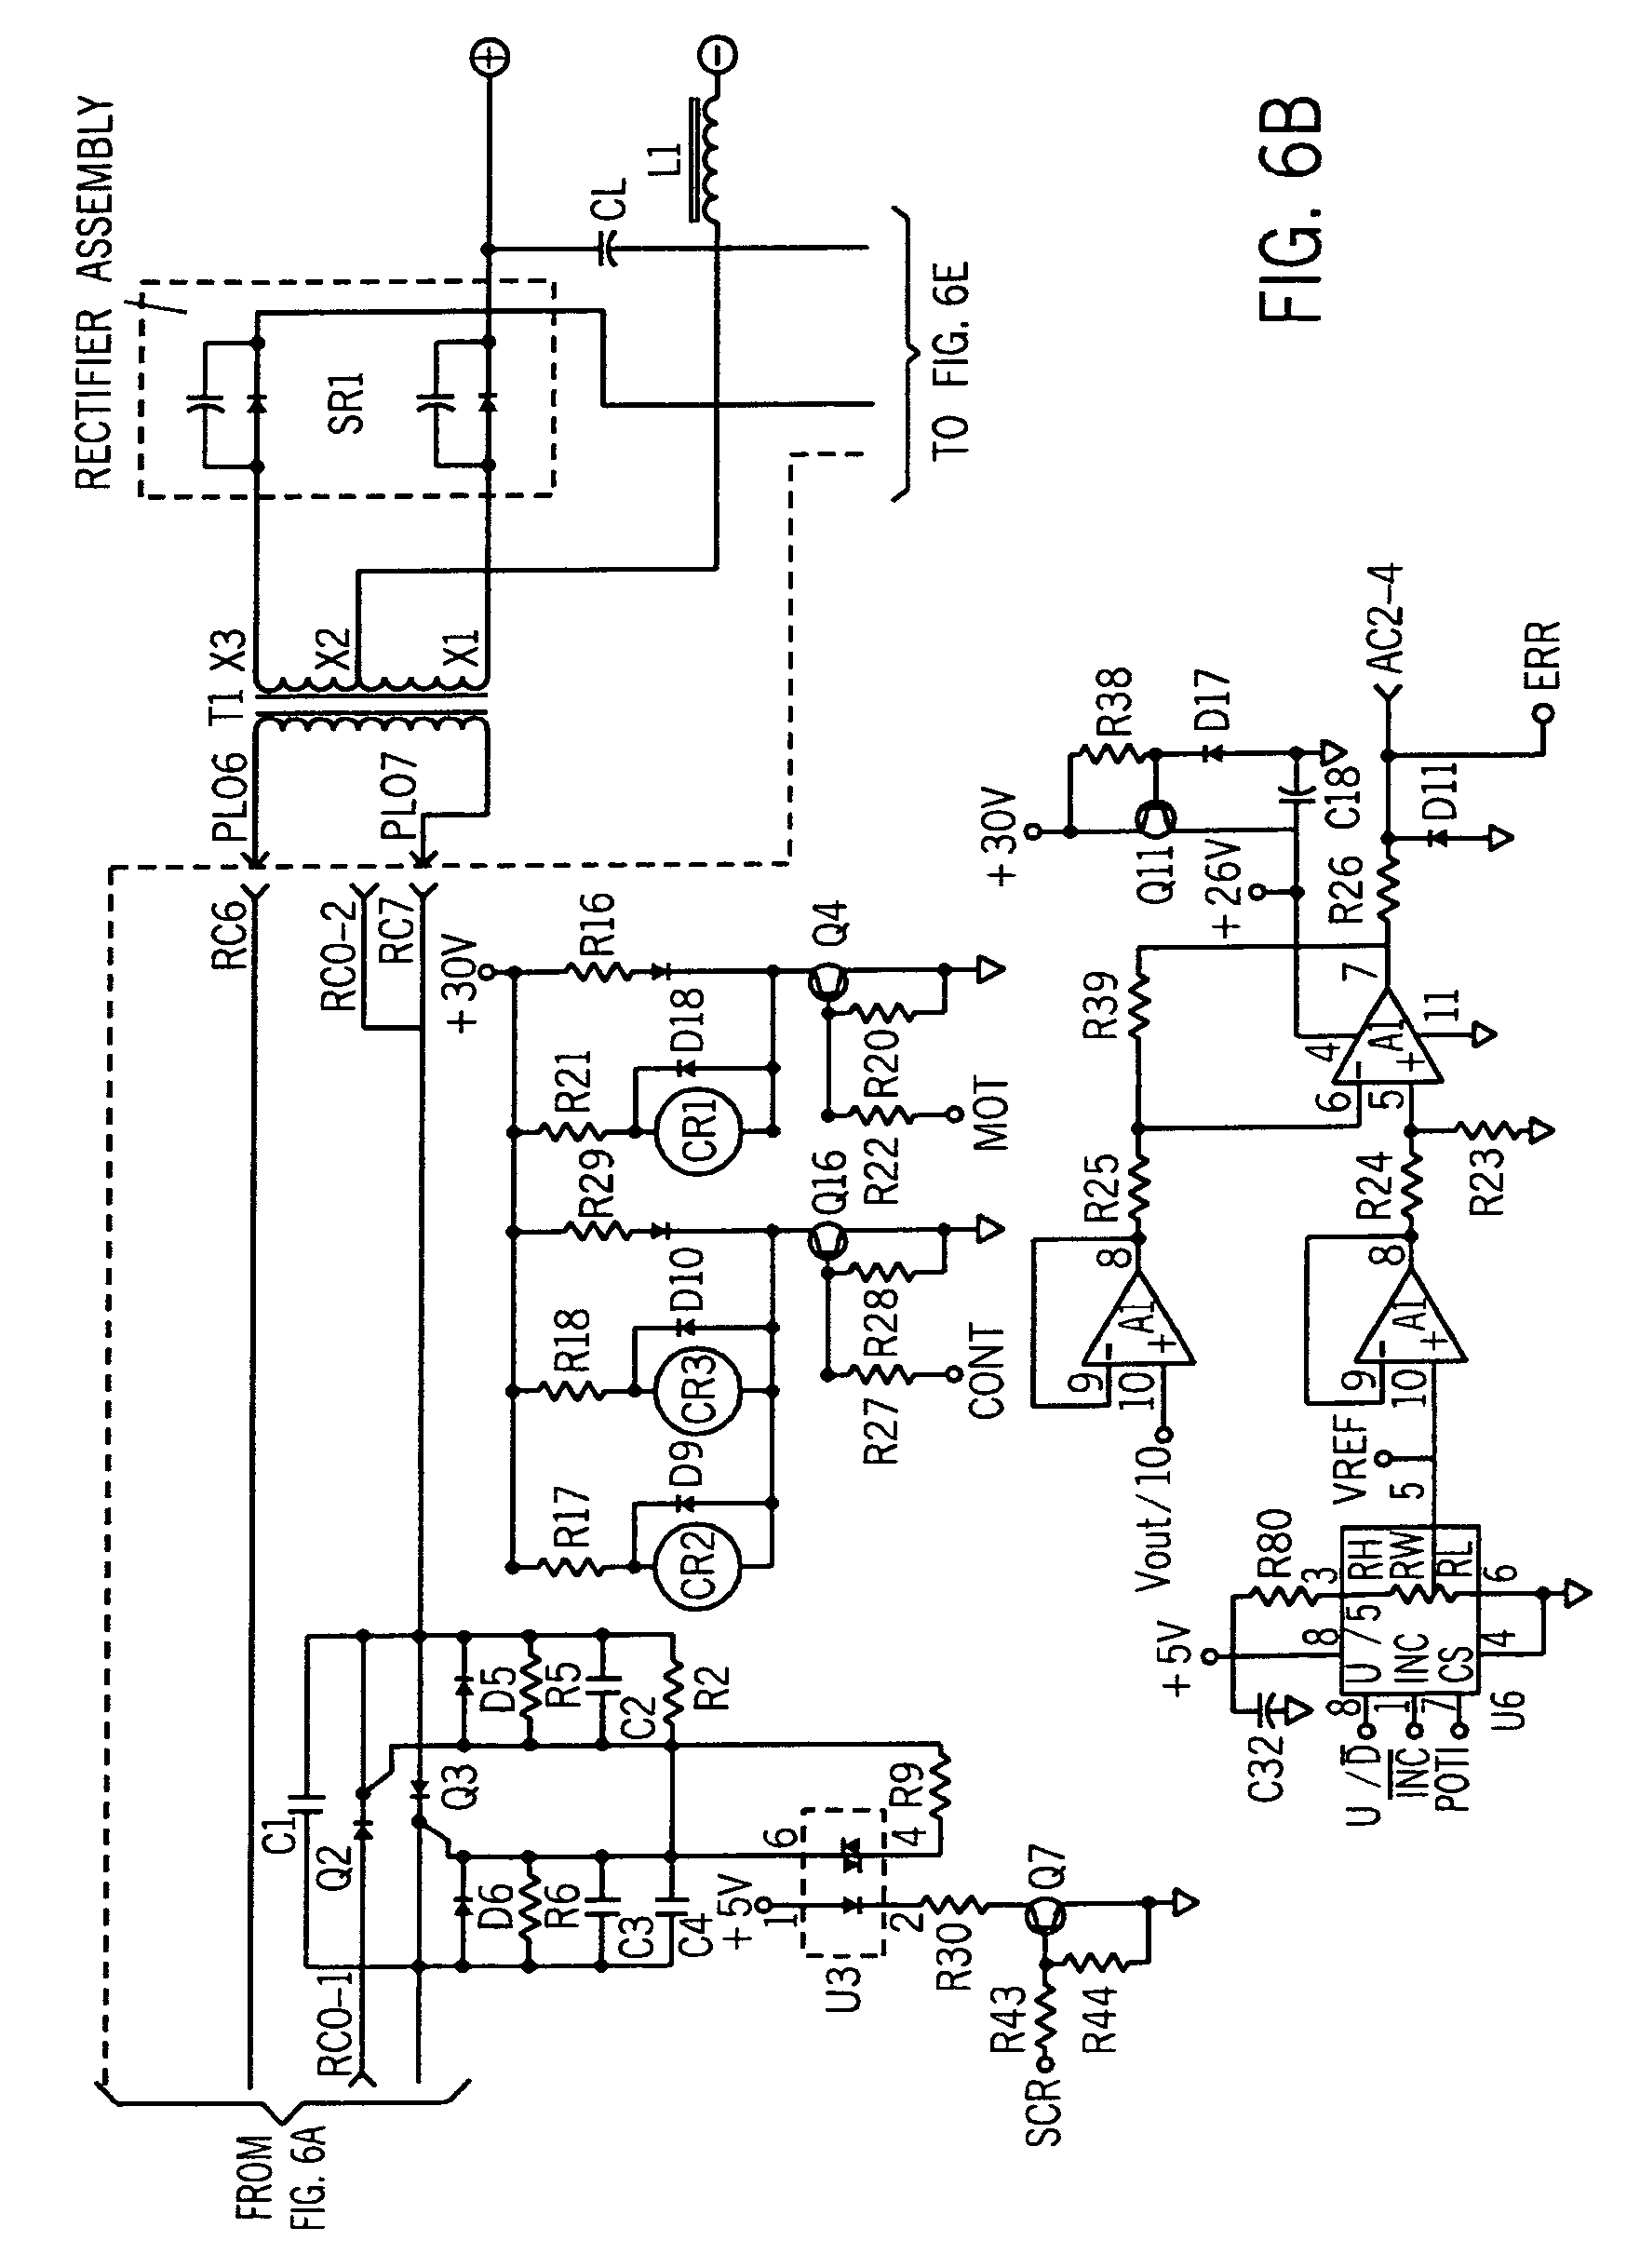 wiring diagram for lincoln welder